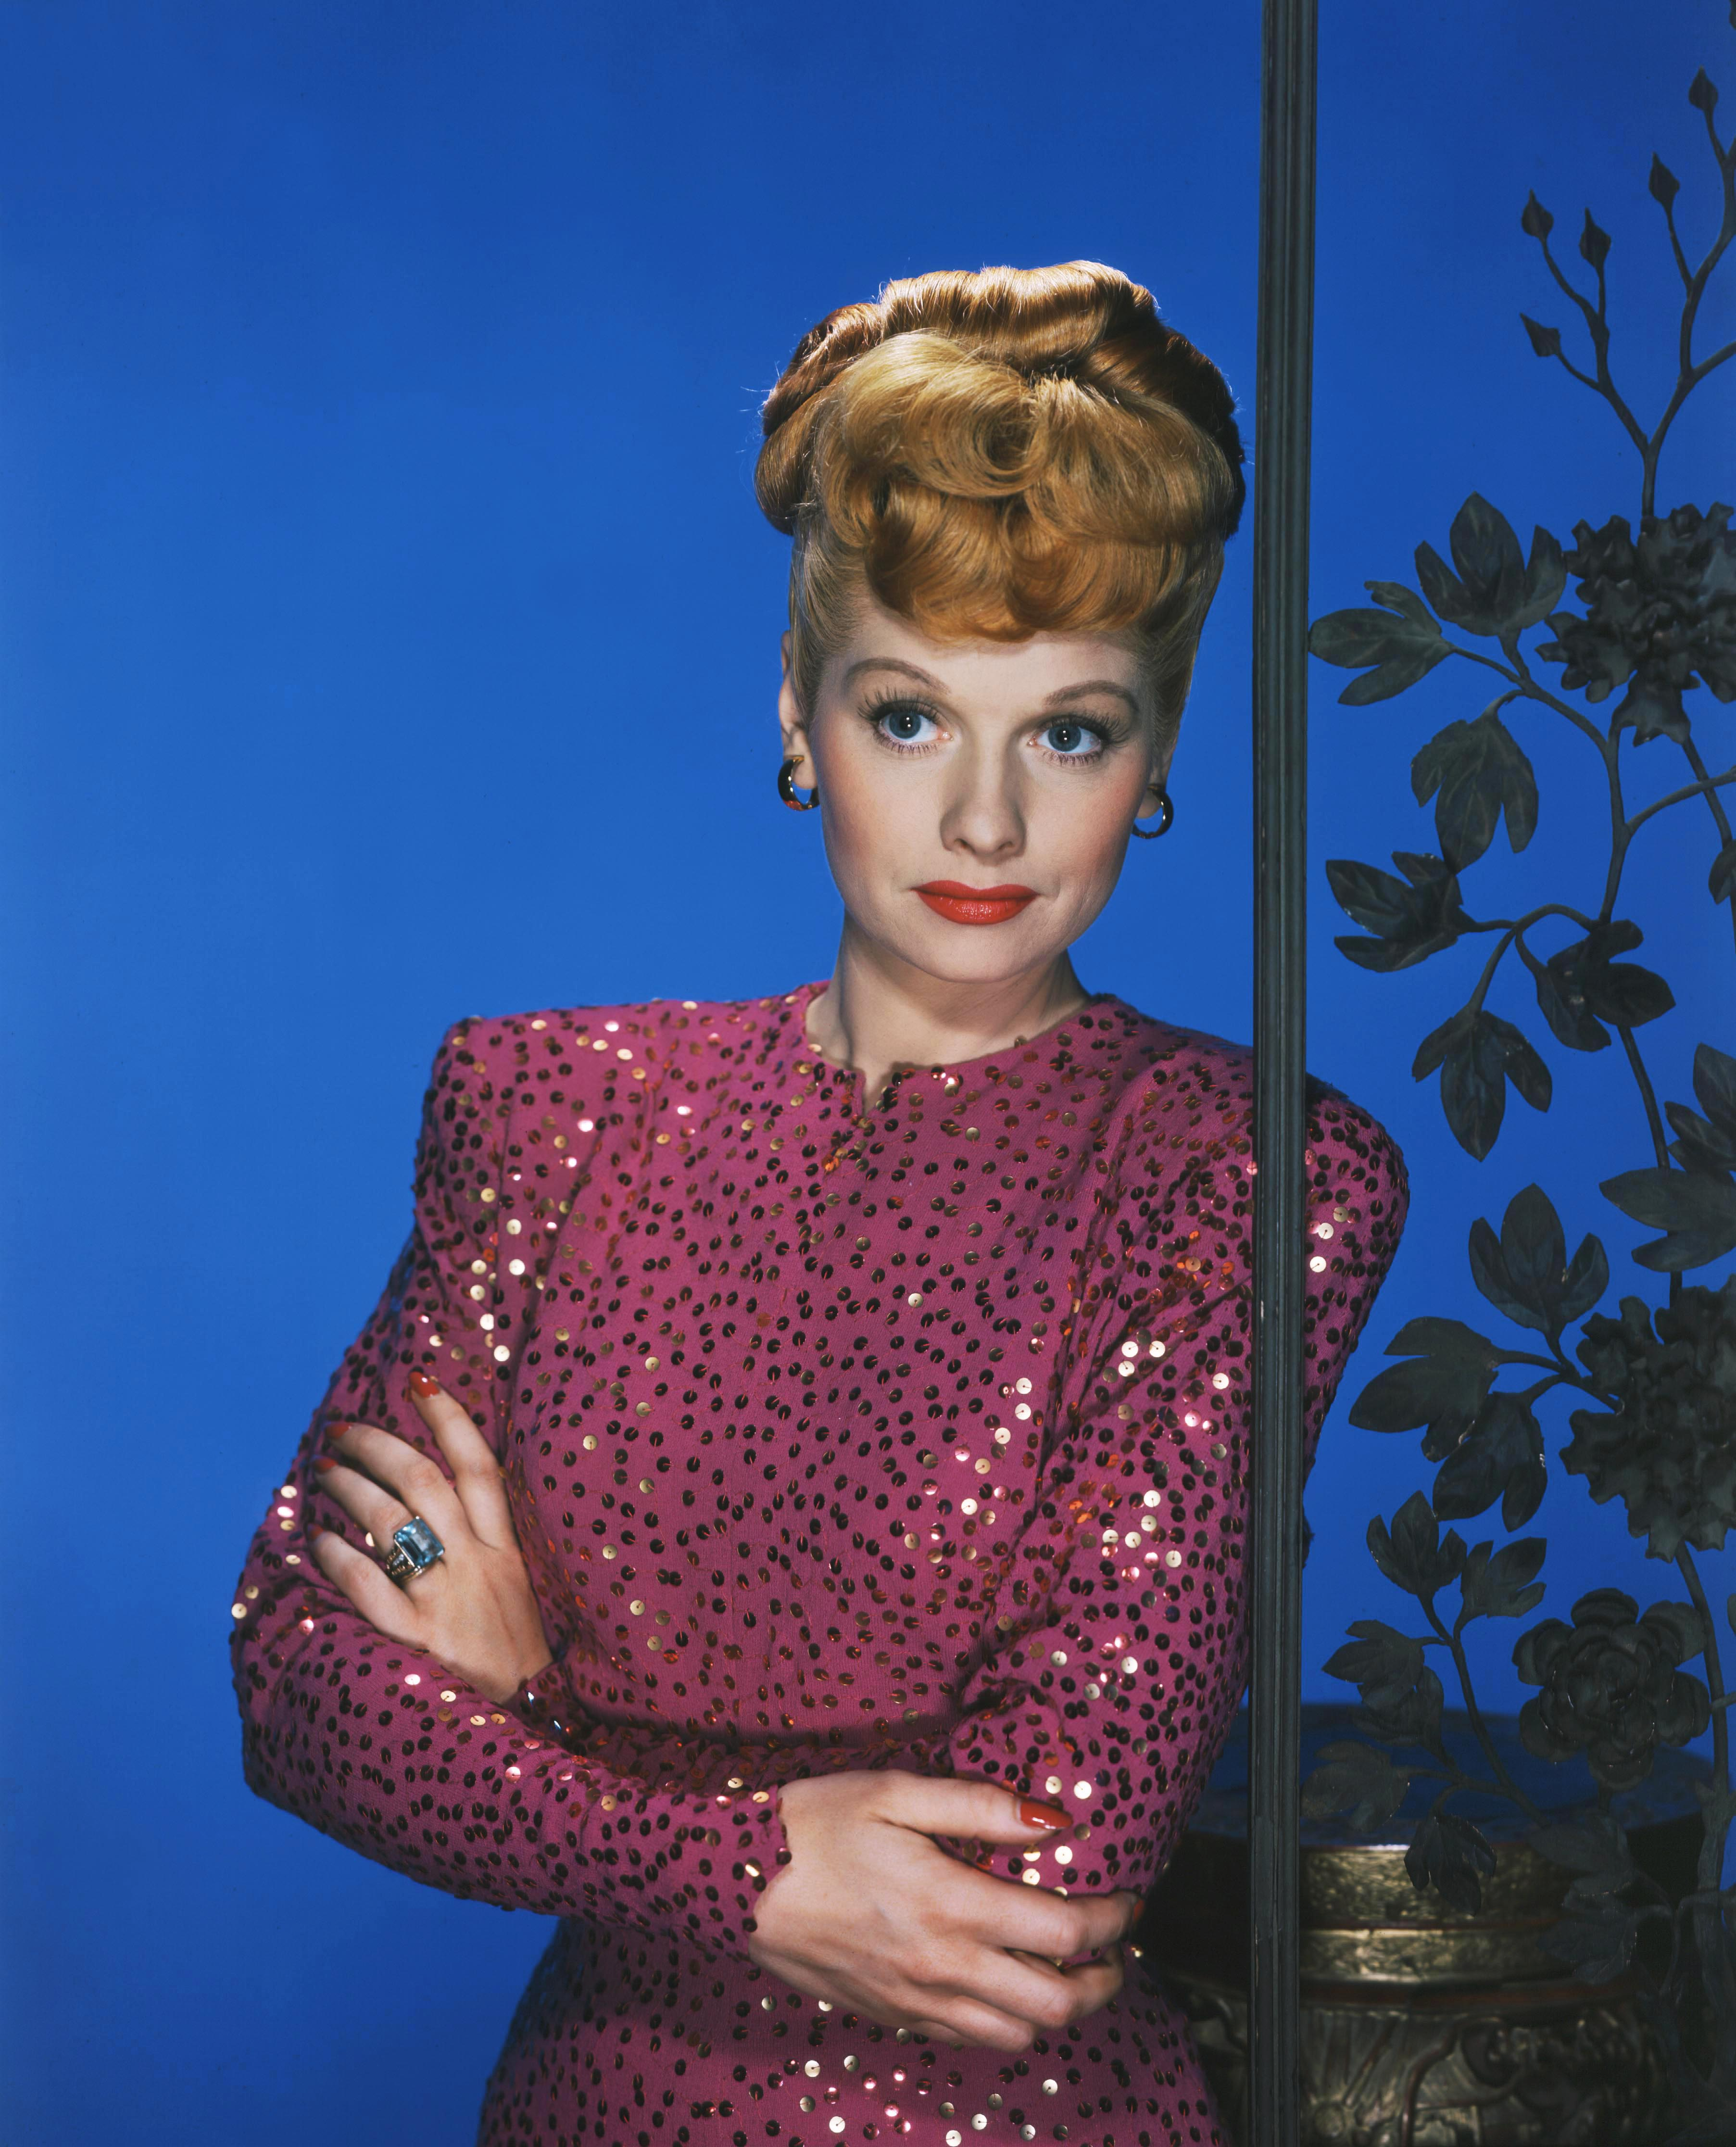 Lucille Ball's Final Show 'Life With Lucy' Was a 'Terrible Burden' on the Actress